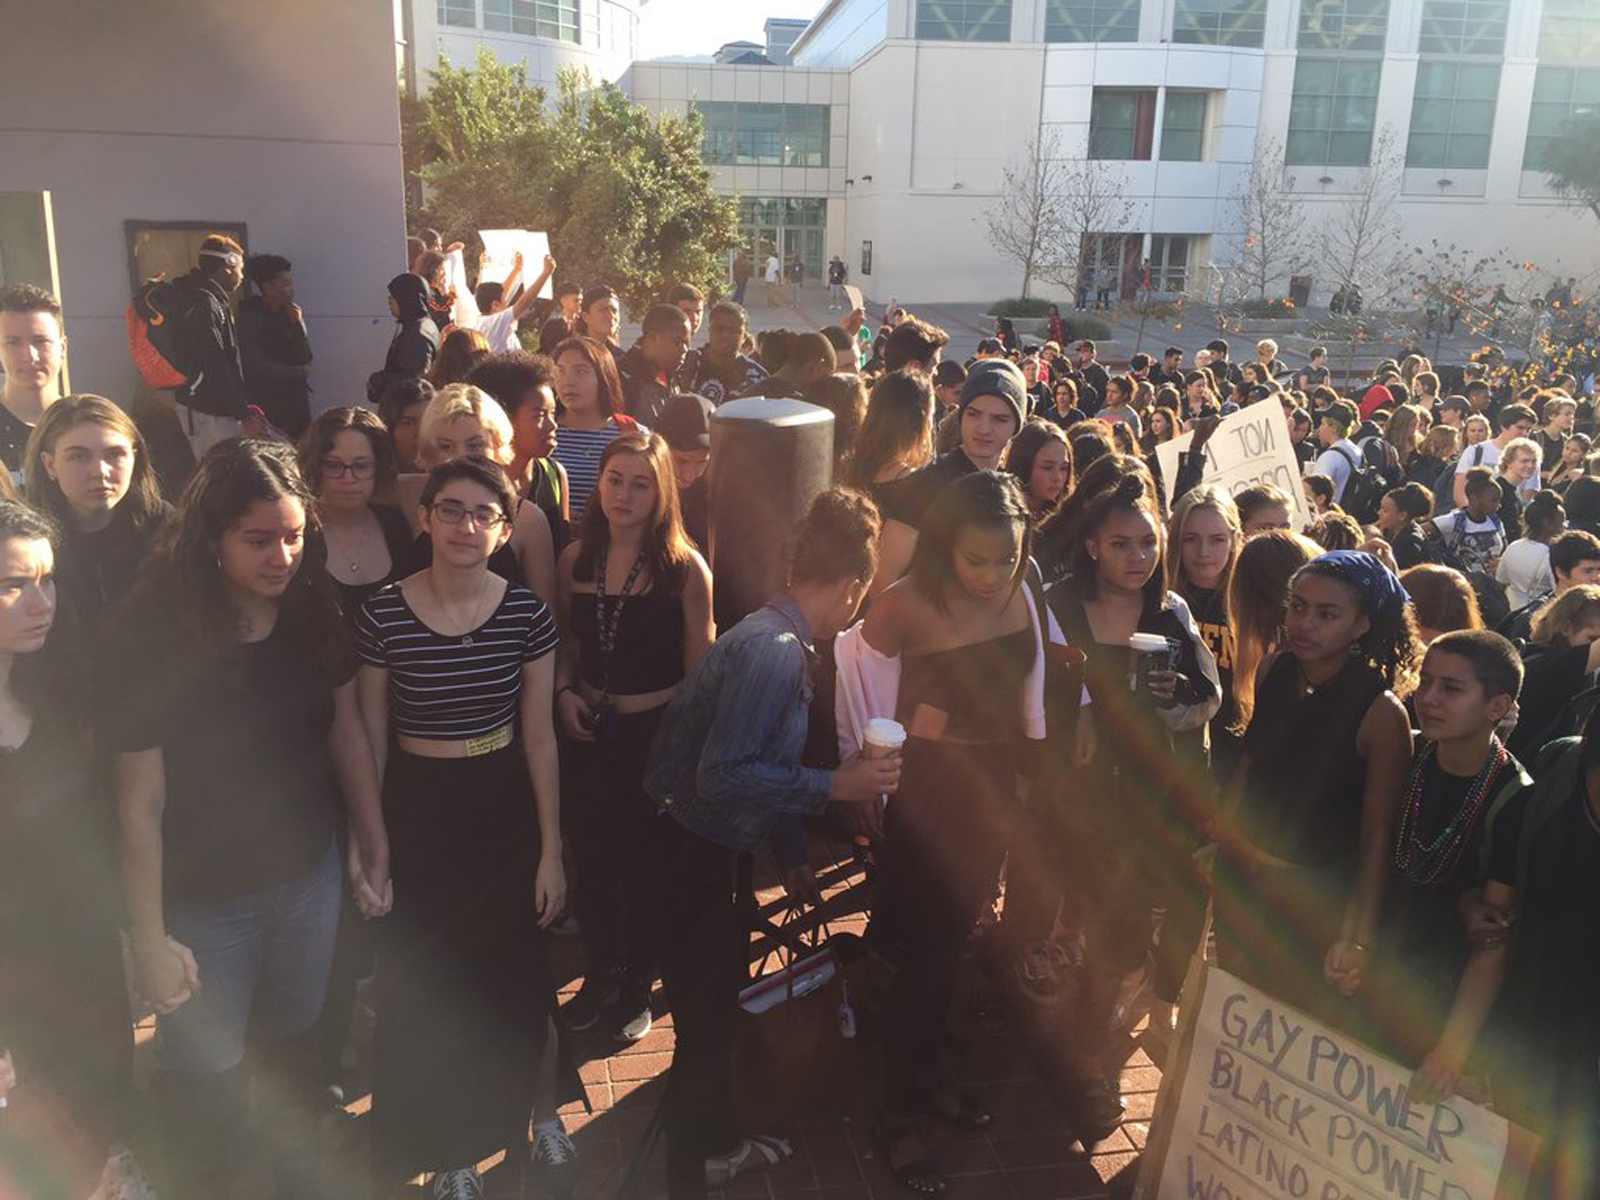 Lillian Weiner-Mock (third from left, in a striped top), co-head of the student body's Gay-Straight Alliance, stages a walk out with fellow students at Berkeley High School to protest against the presidential election of Donald Trump, in Berkeley, Calif., on Nov. 9, 2016.